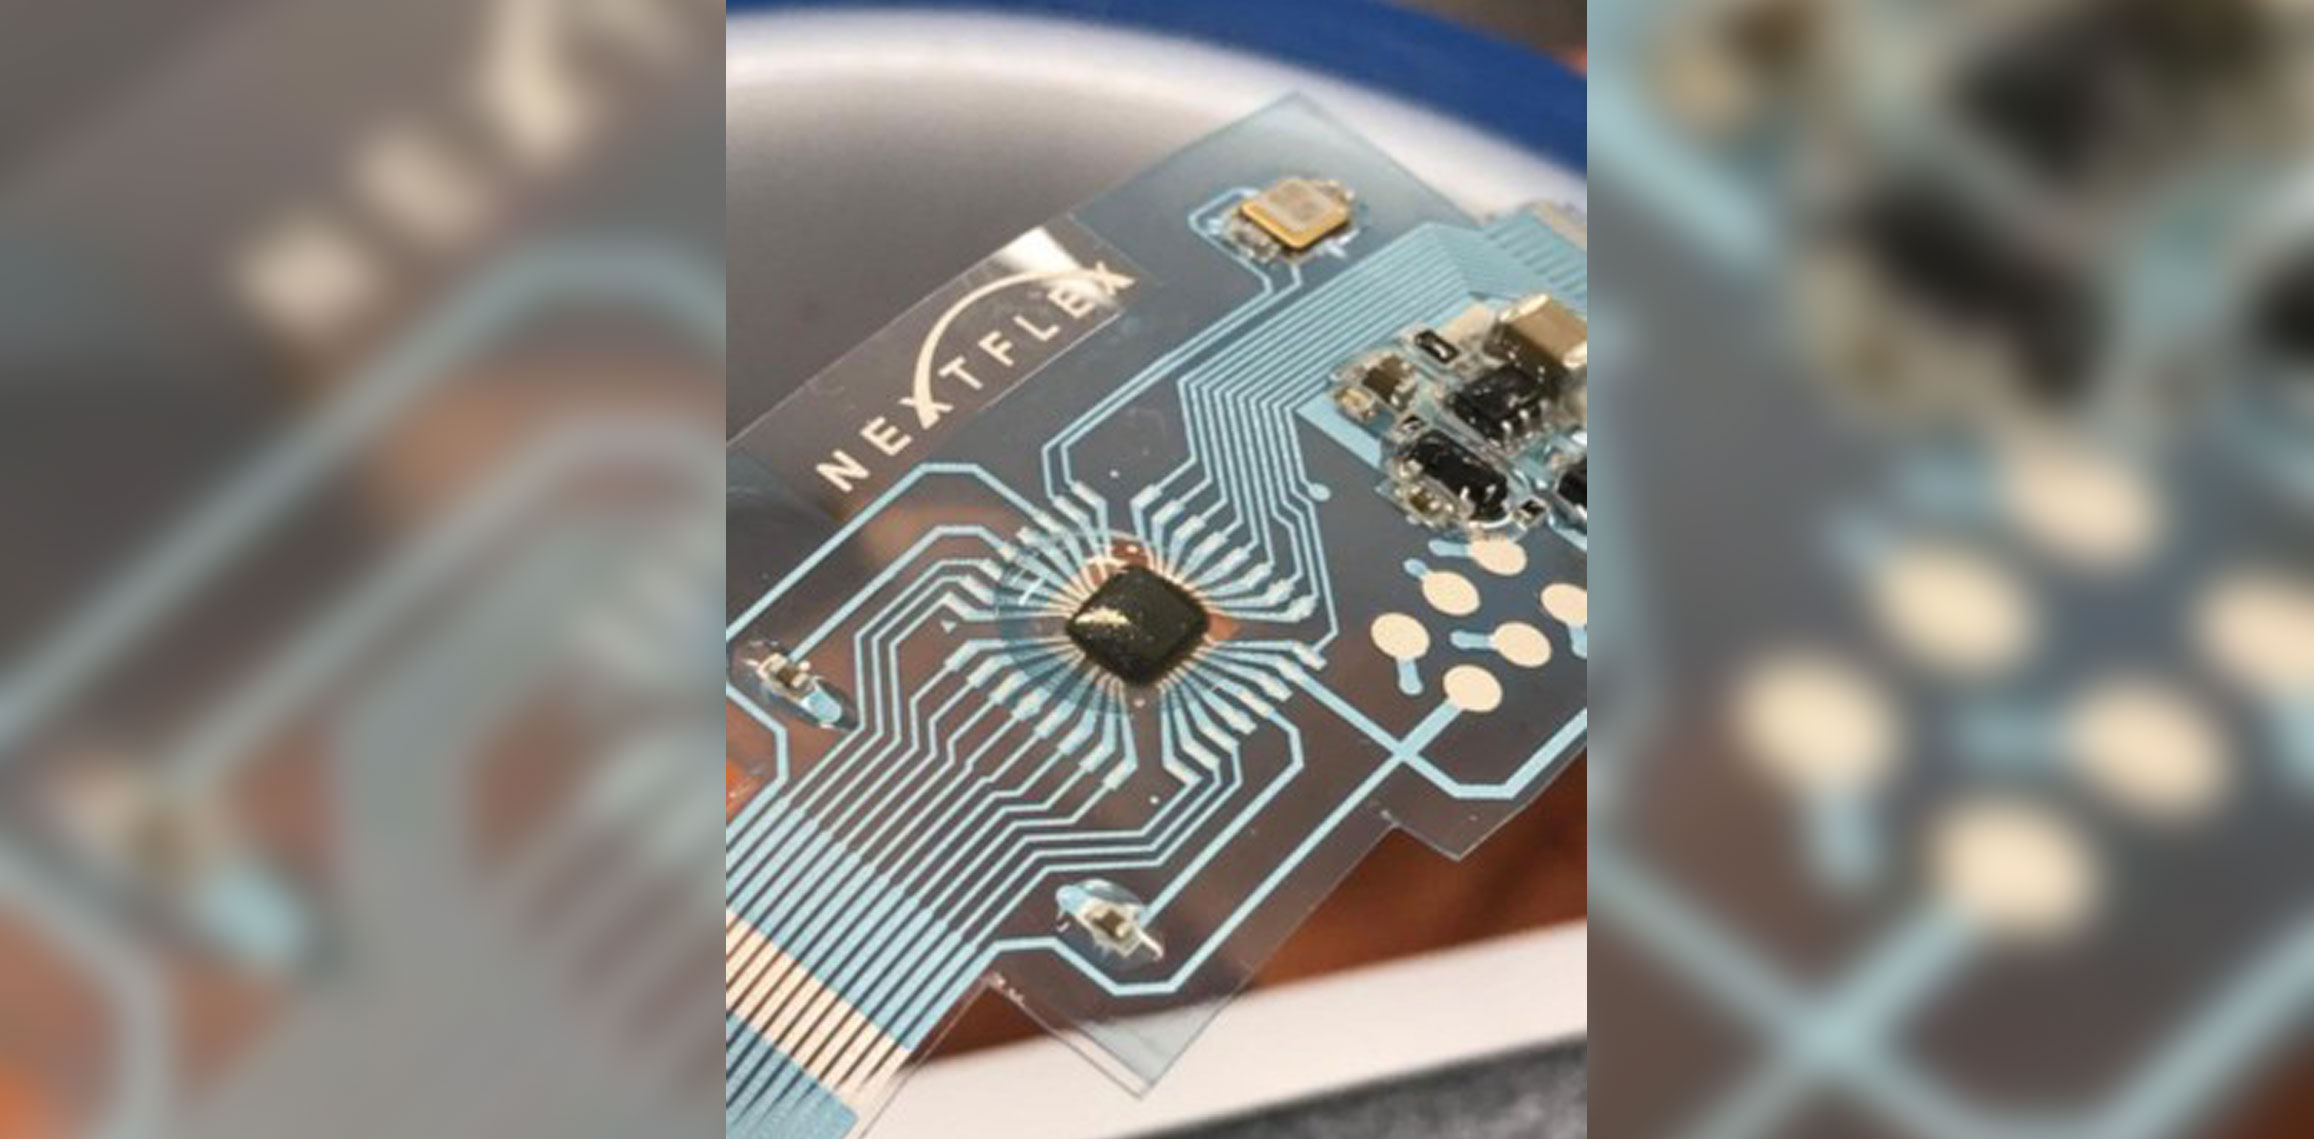 screen printed arduino pcb conductive Ag ink